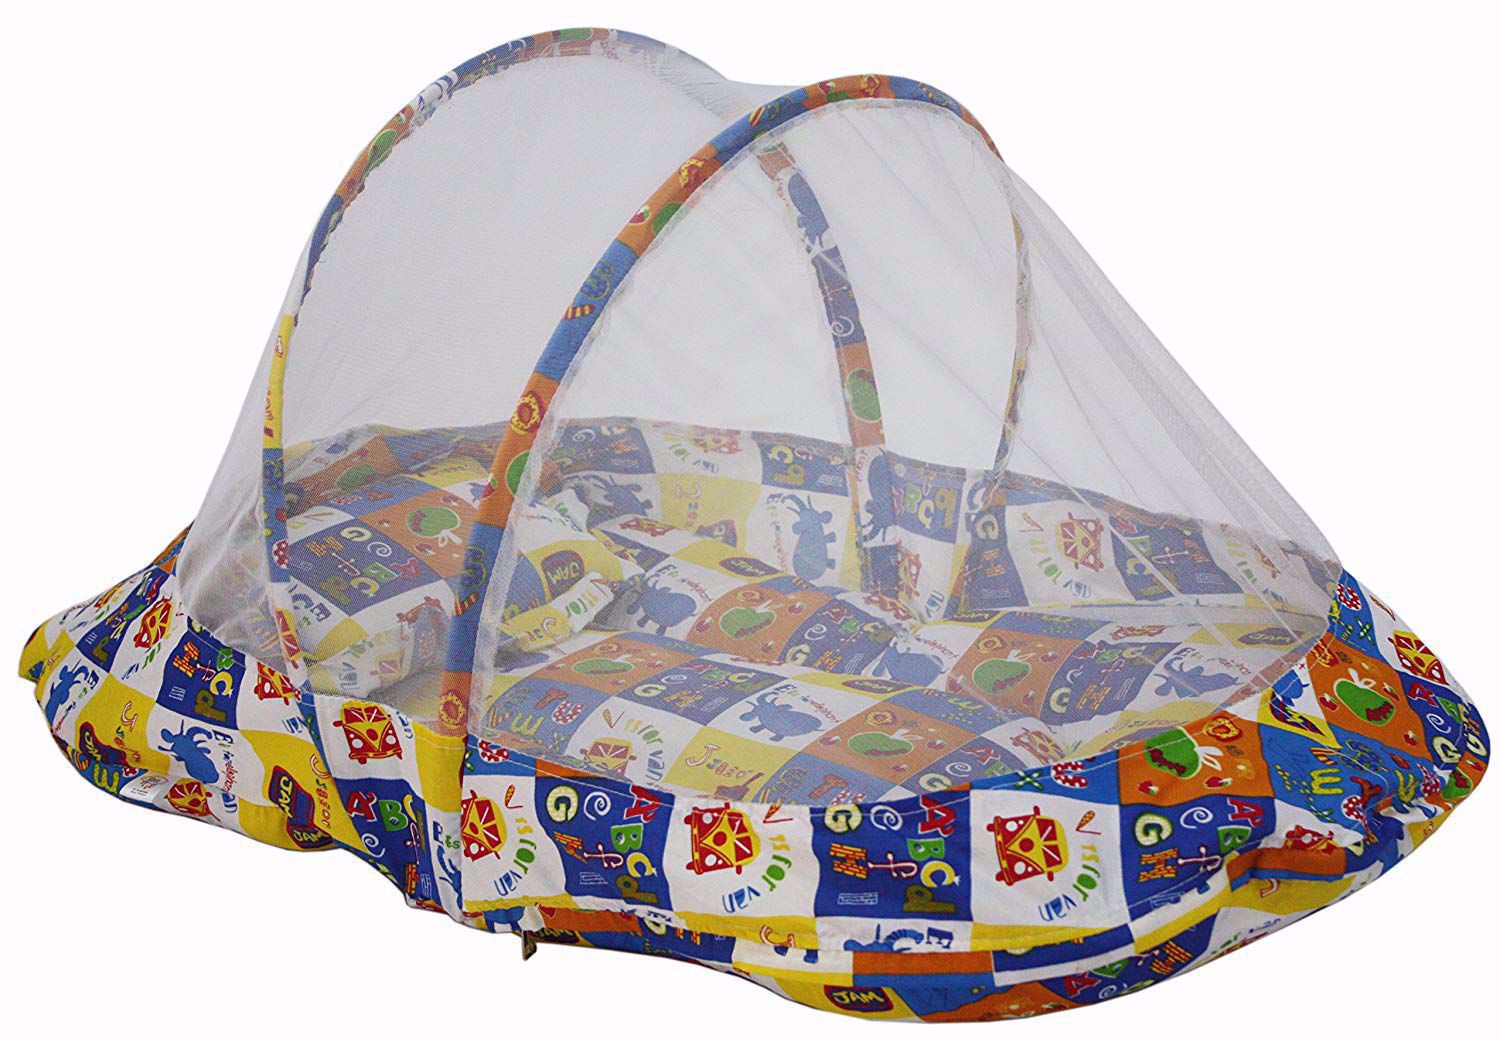 ABC Collage Baby Mattress with Mosquito Net, Blue,baby mattress with mosquito net, online